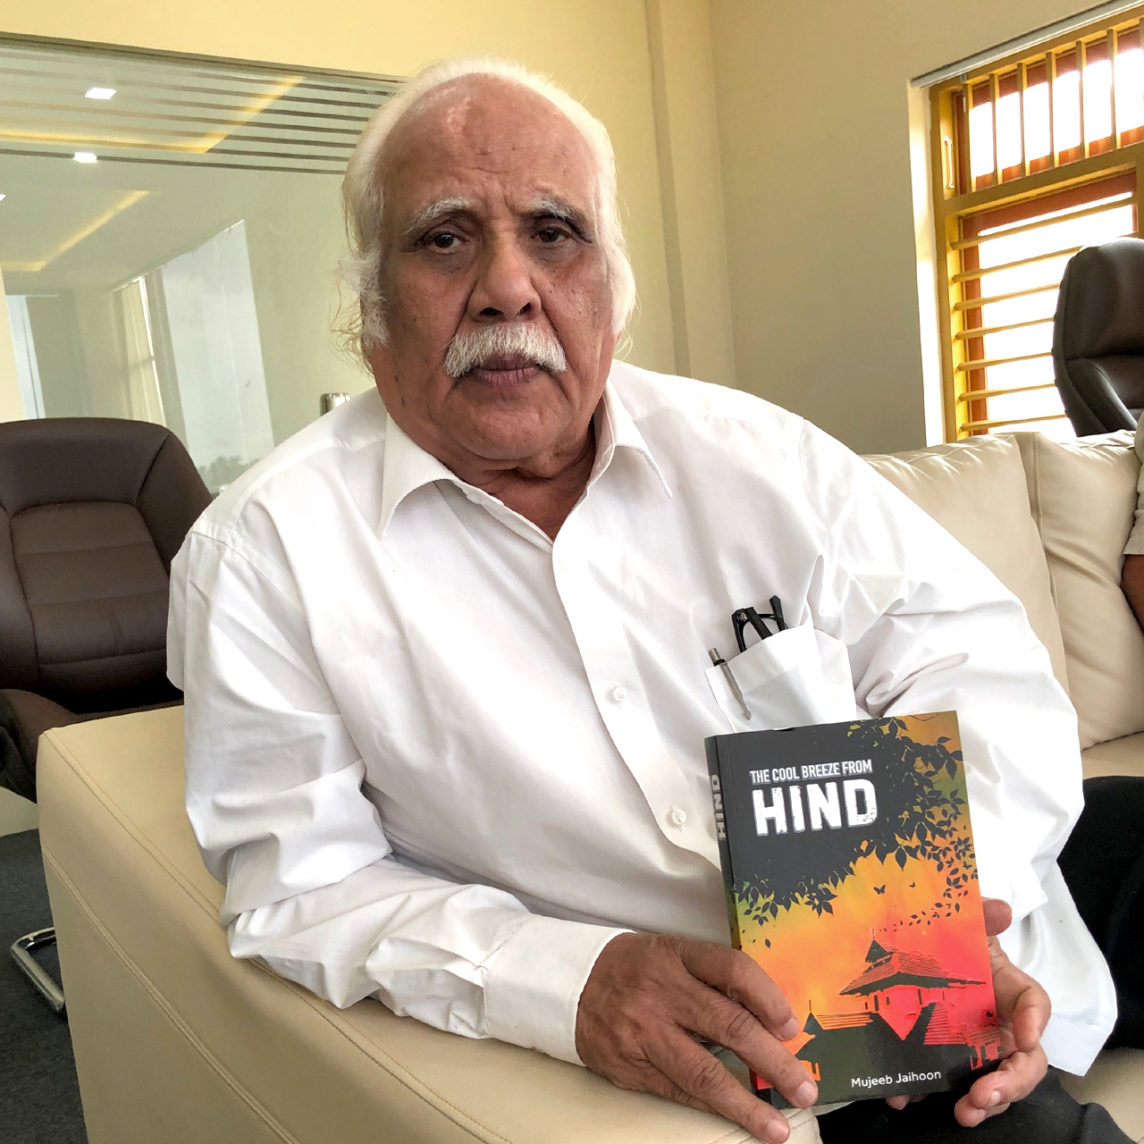 KKN Kurup holding The Cool Breeze From Hind, historical fiction by Mujeeb Jaihoon